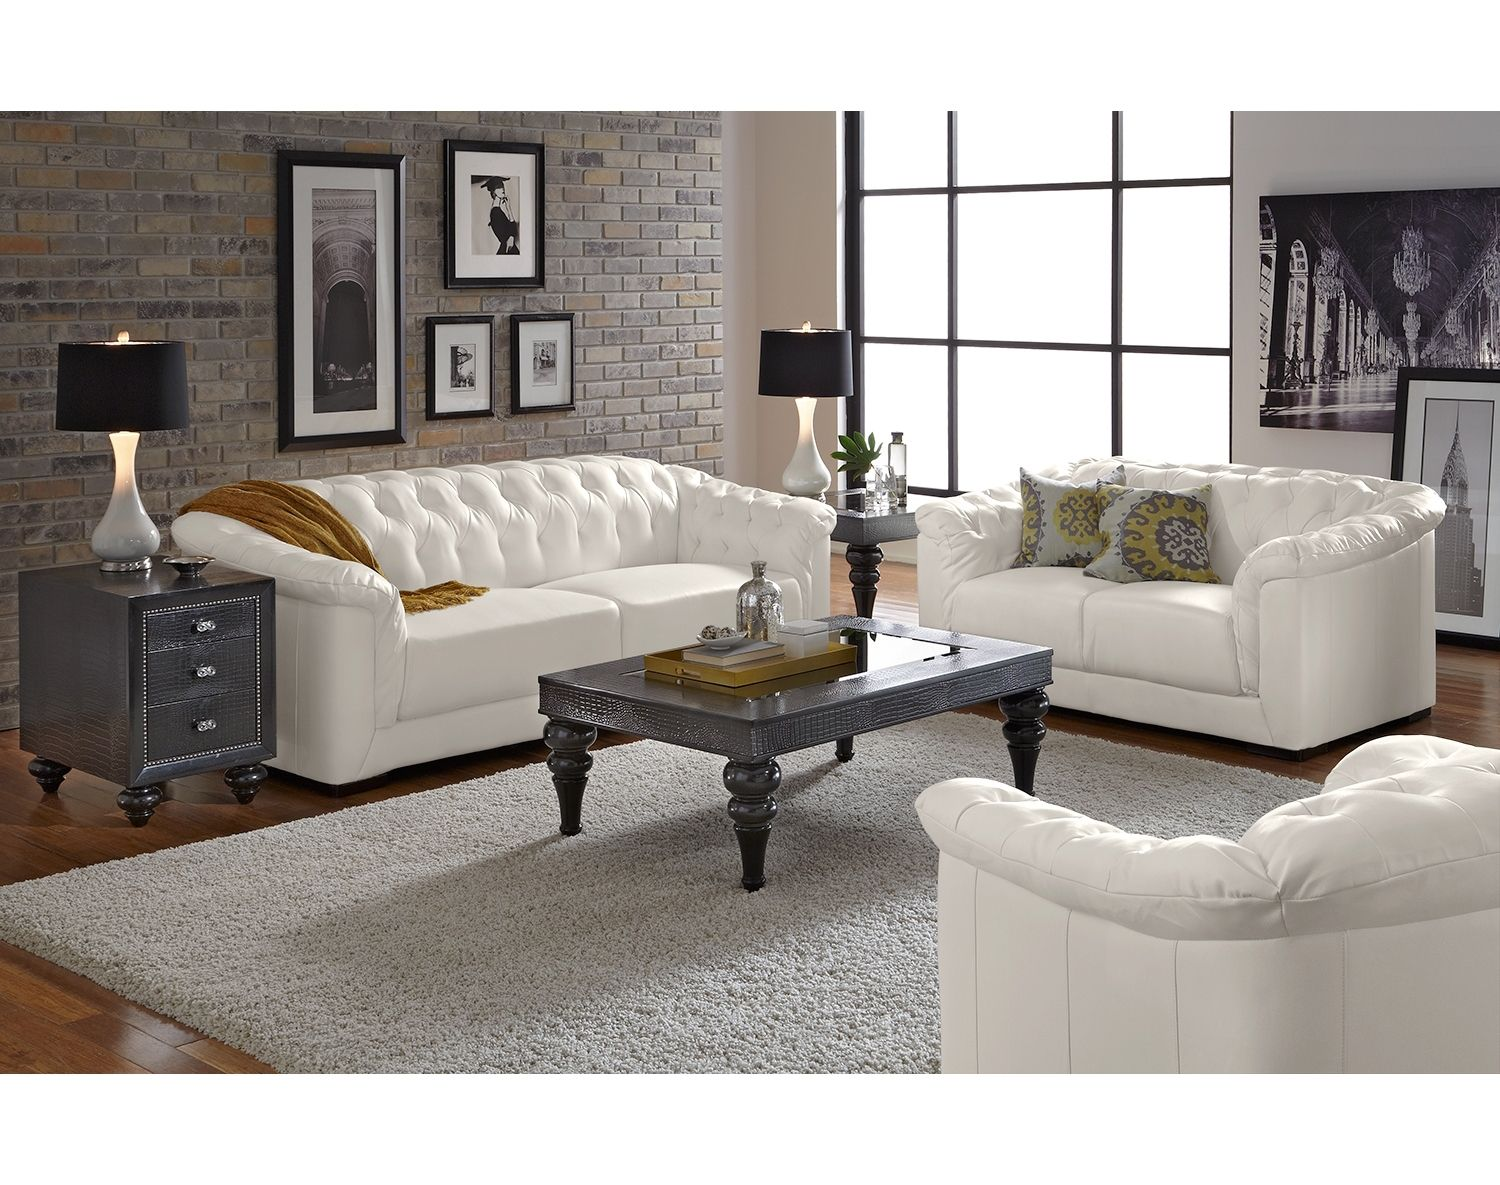 city furniture living room sets french country wall colors the giorgio collection value mid century modern